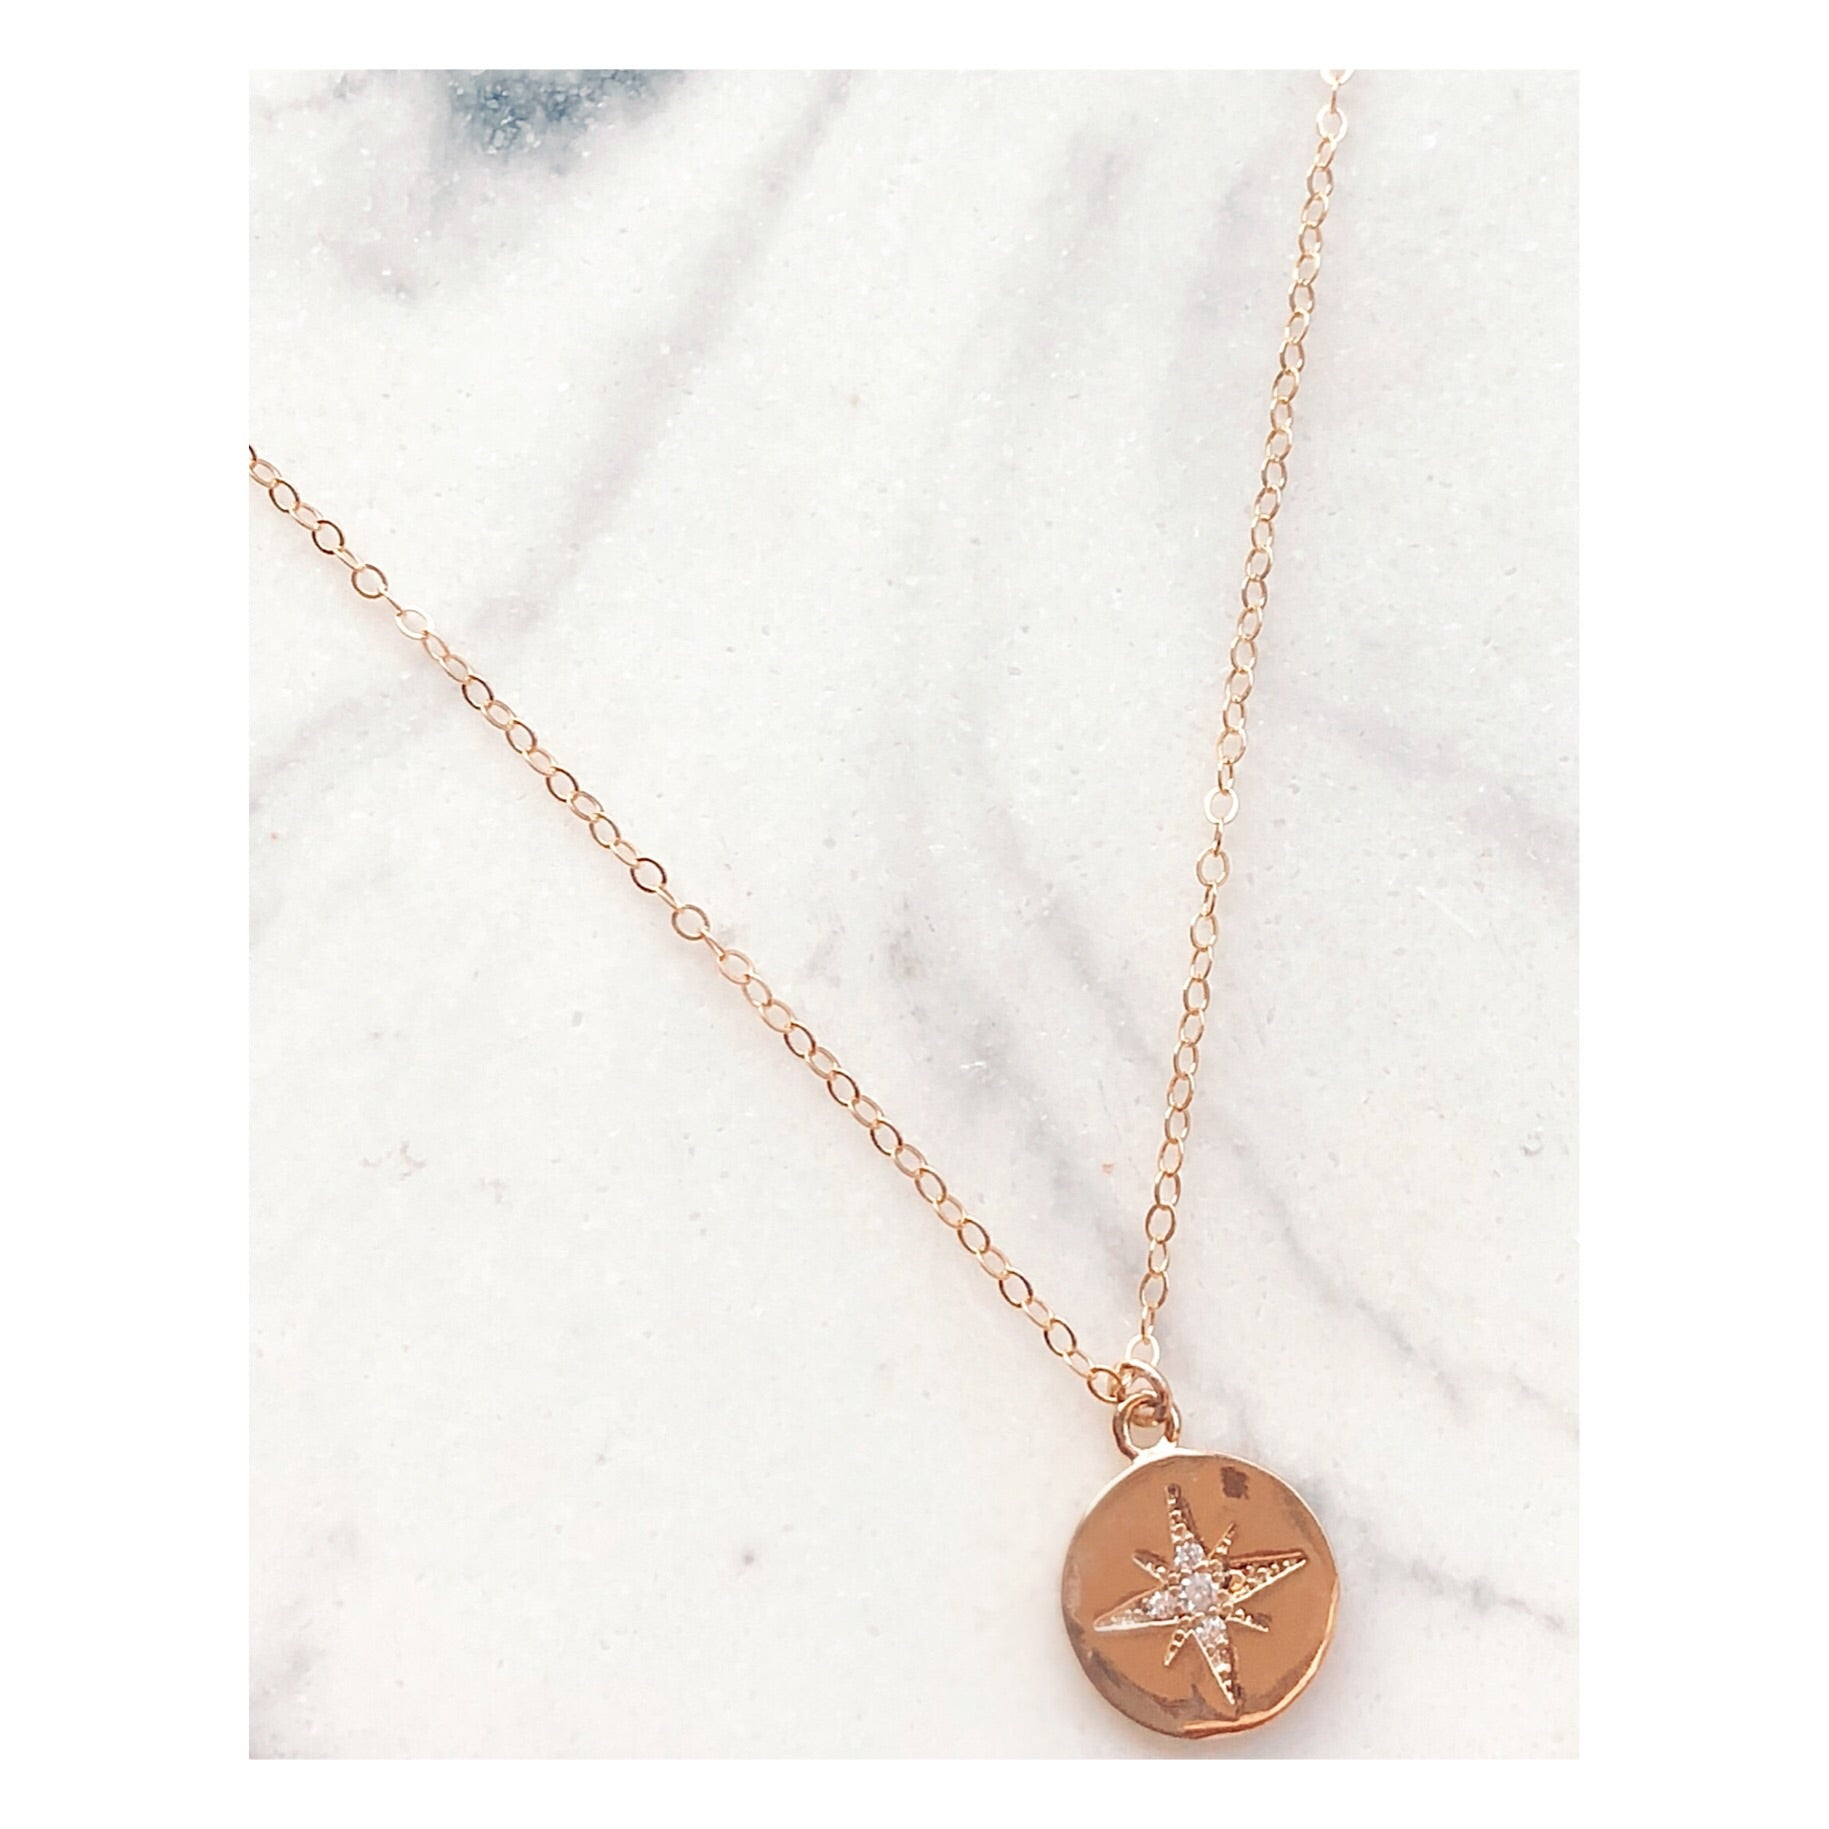 Cole Compass Pendant Necklace (GF)